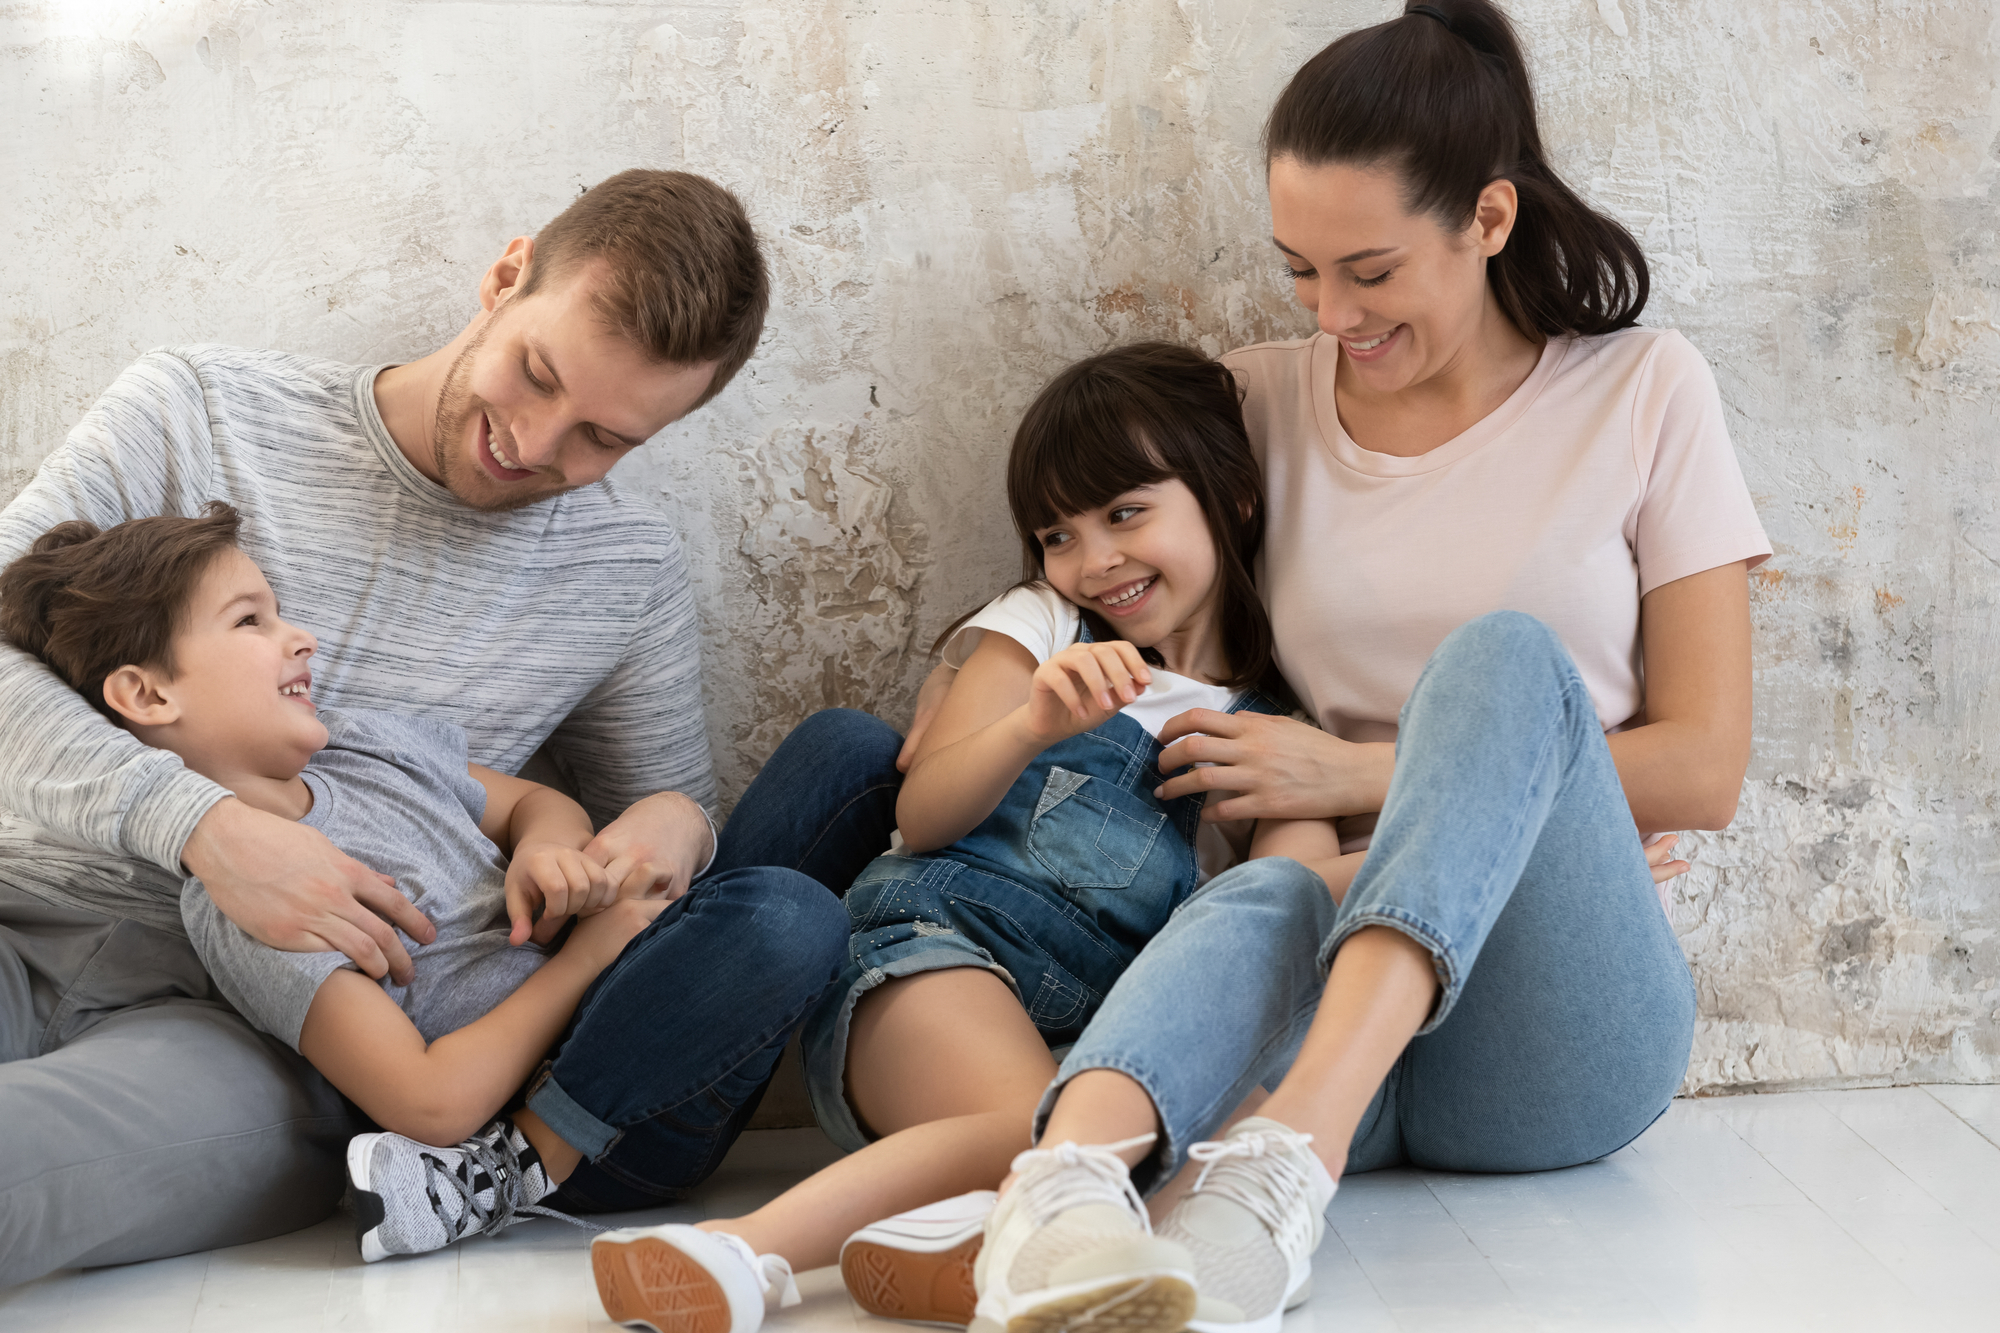 Happy parents and cute children playing tickling sit on floor